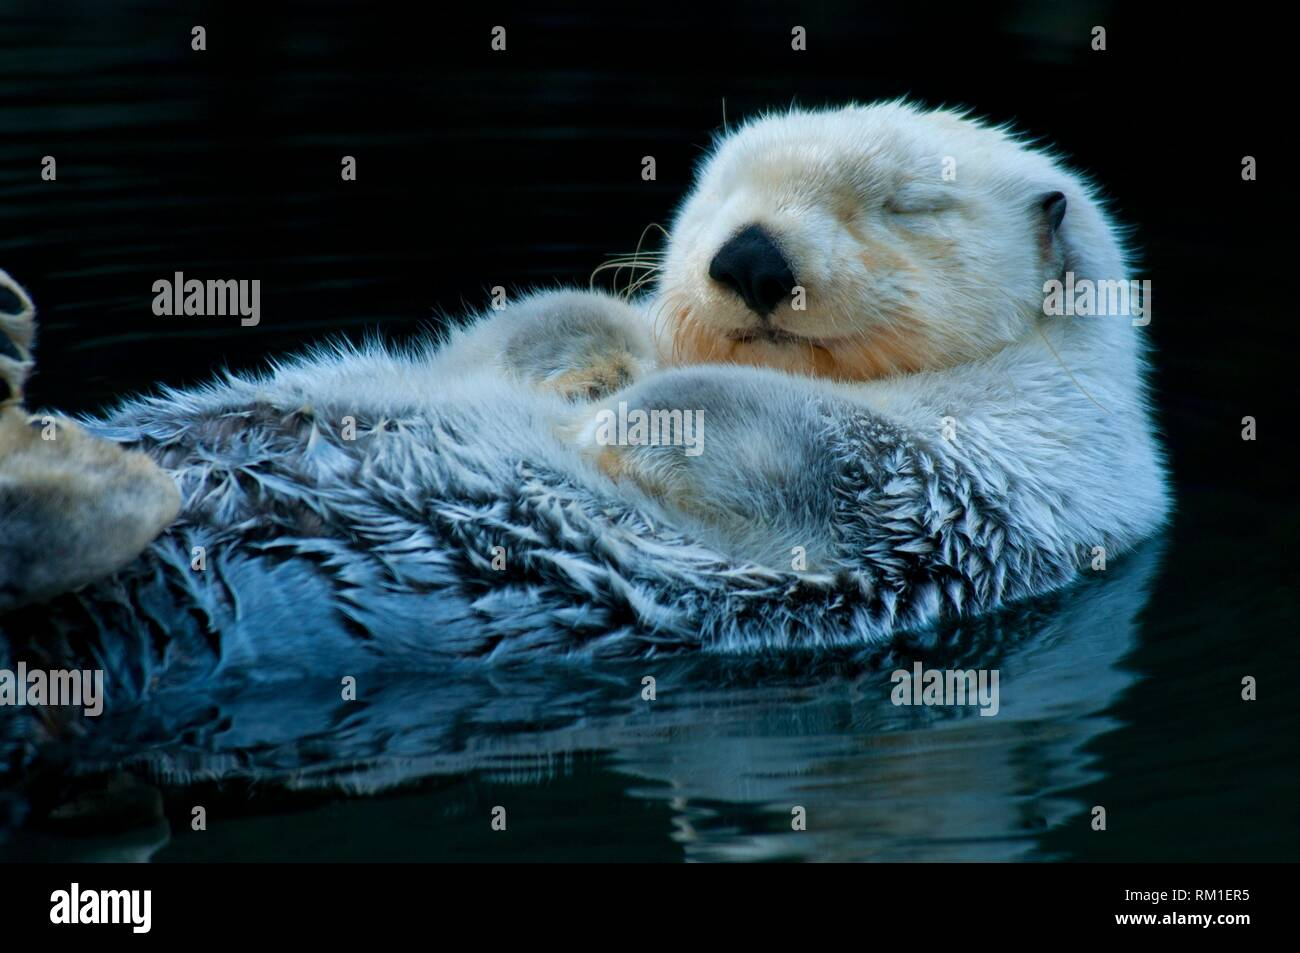 Sea otter, Point Defiance Zoo and Aquarium, Point Defiance Park, Tacoma, Washington. - Stock Image